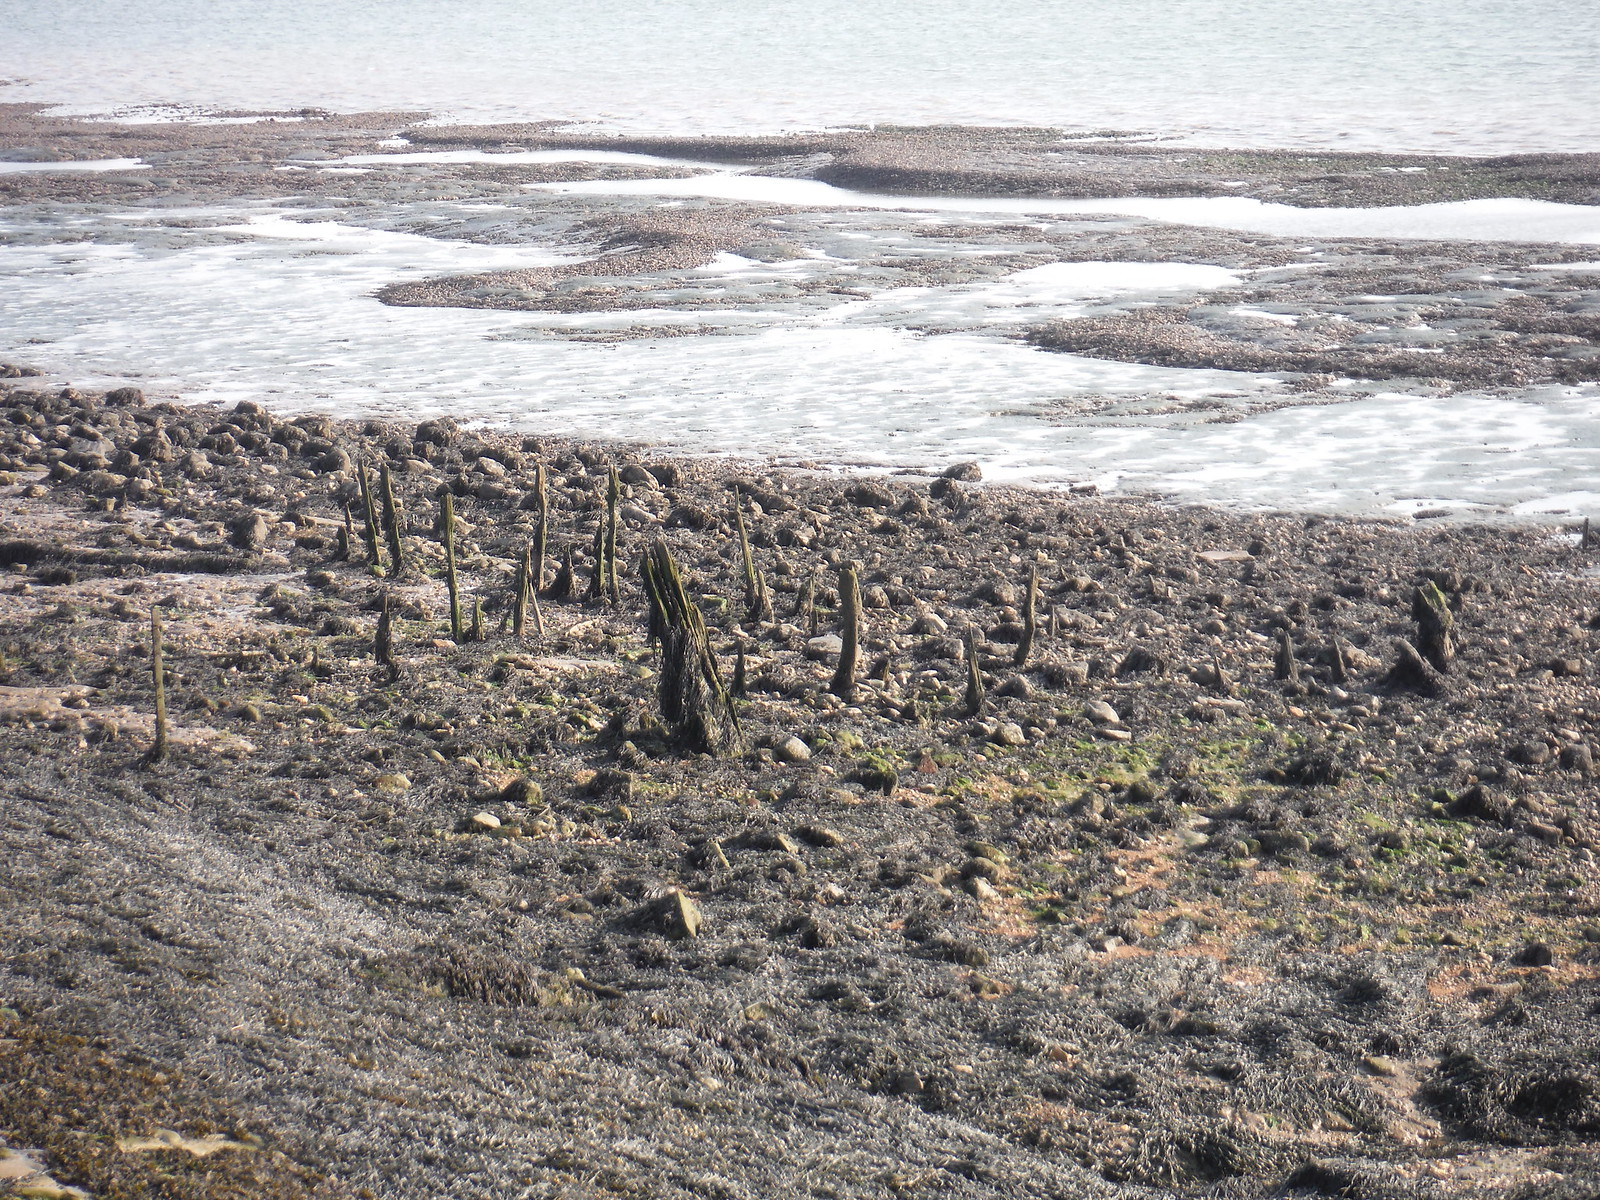 Remnants of medieval sea defences SWC Walk 162 North Fambridge to Burnham-on-Crouch